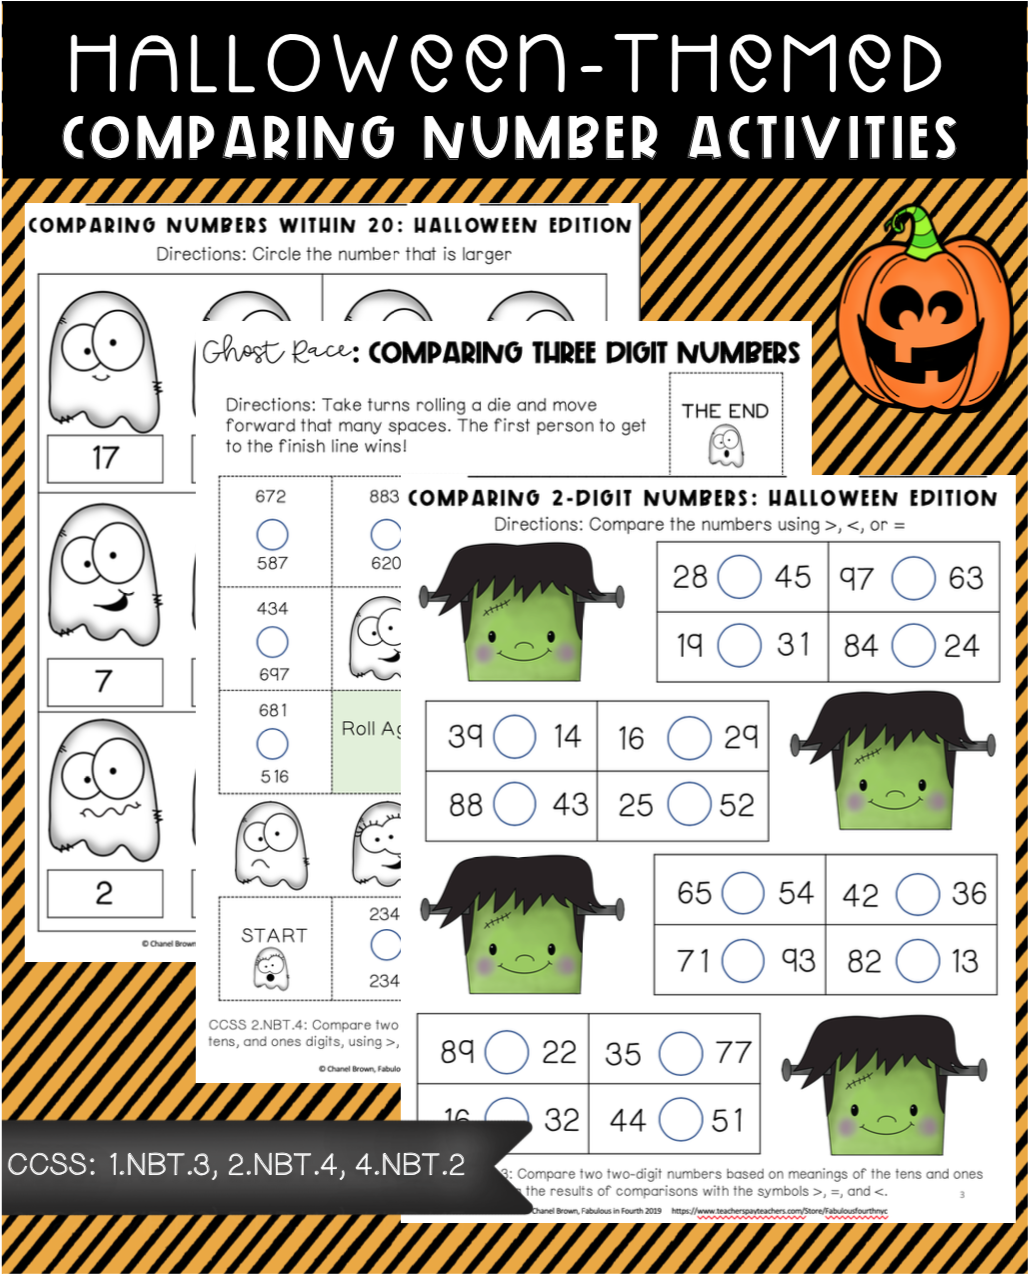 Halloween Themed Comparing Numbers Activities